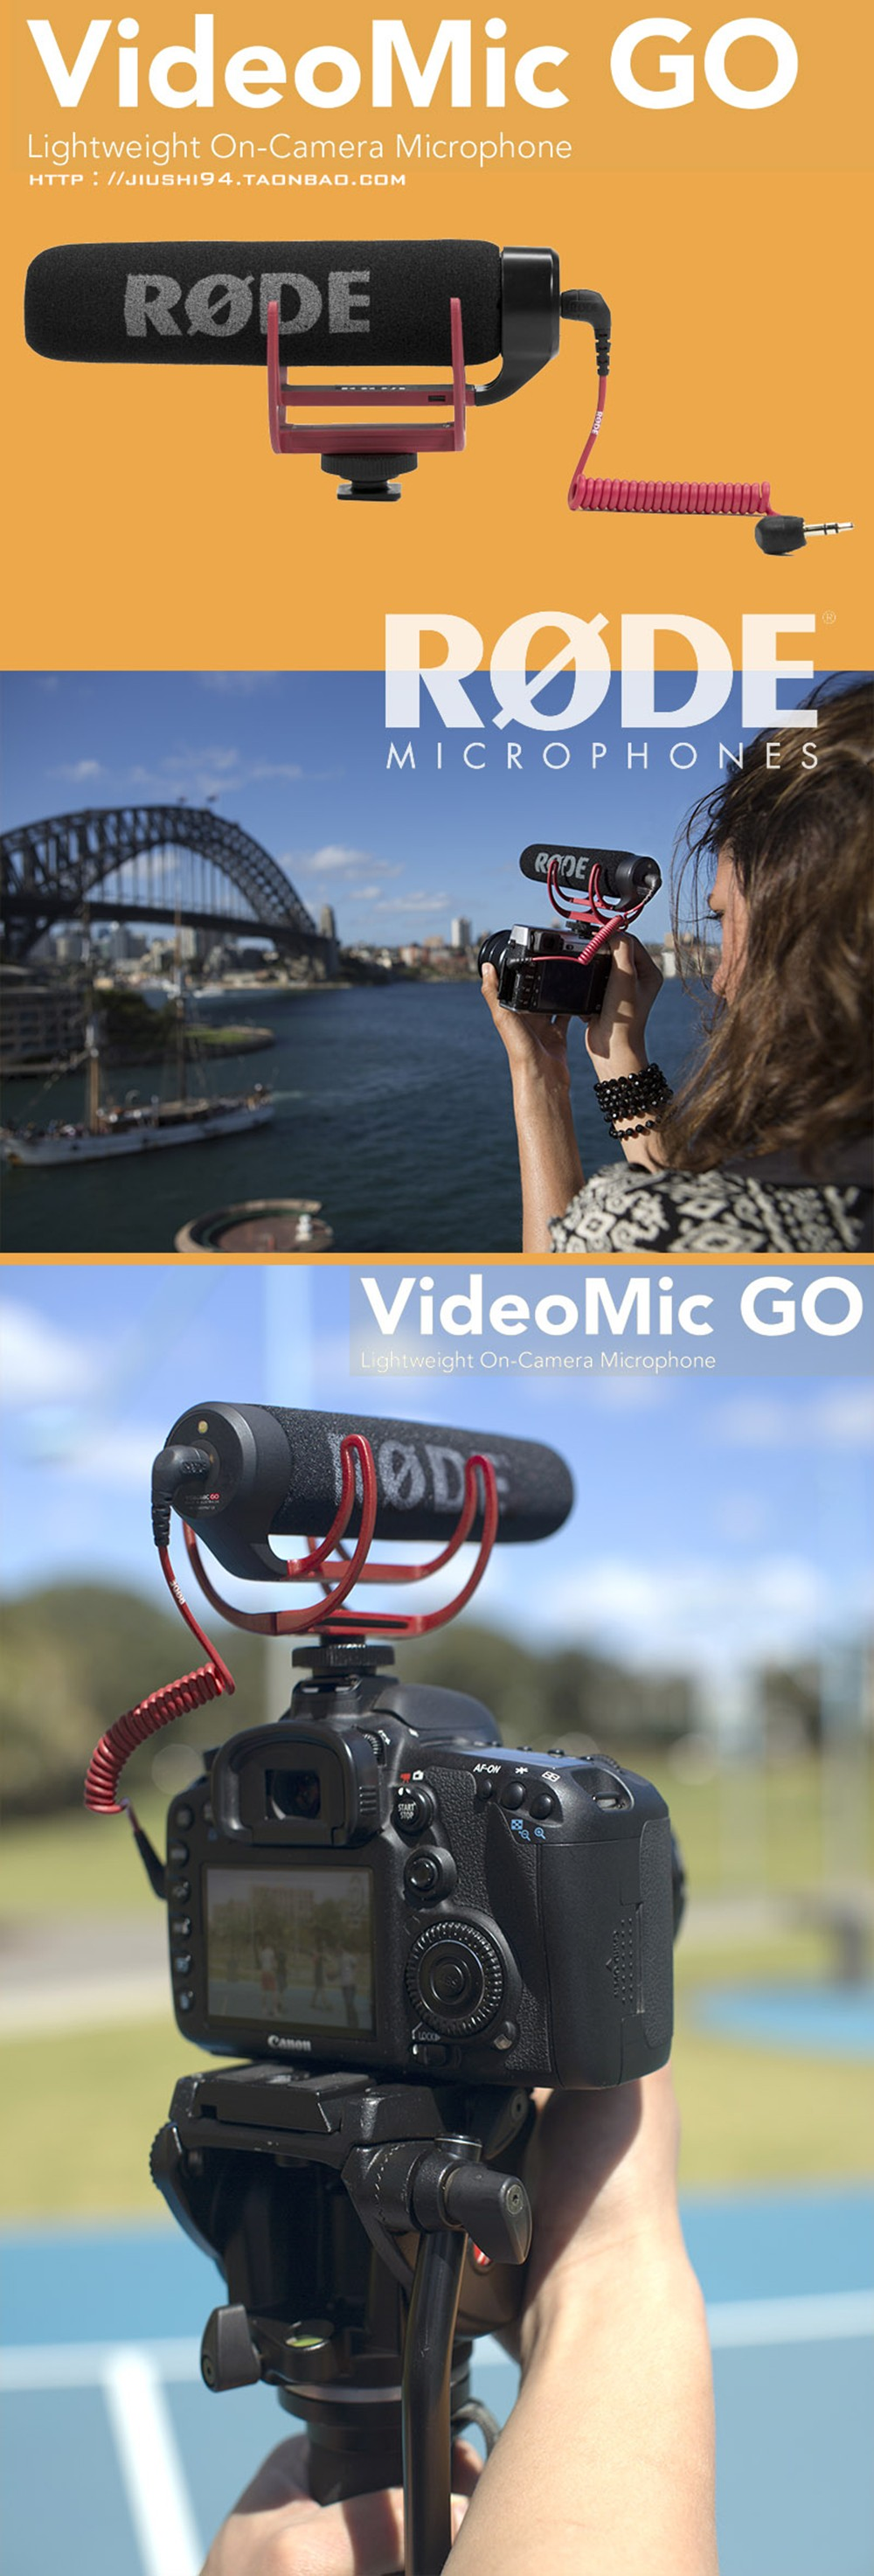 Rode VideoMic Go Microphone Price in Bangladesh